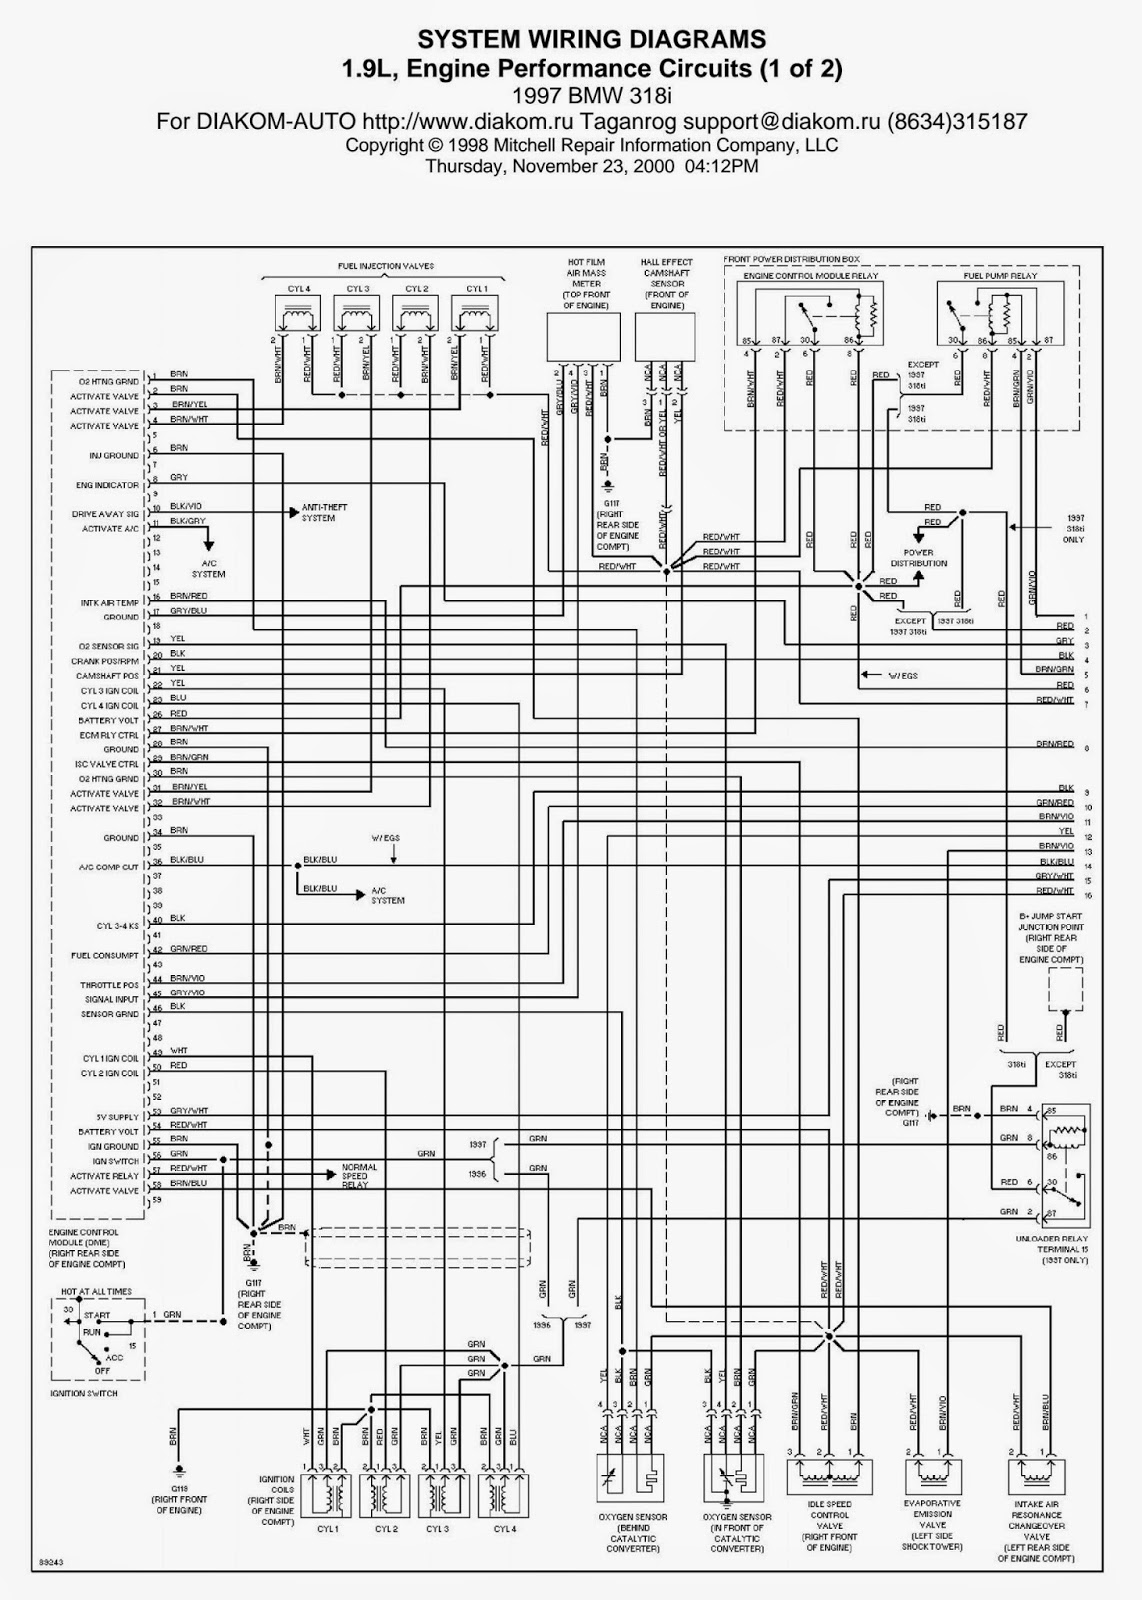 2014 bmw 328i engine diagram 2001 gmc sierra stereo wiring diagrams and free manual ebooks 1997 318i 1 9l